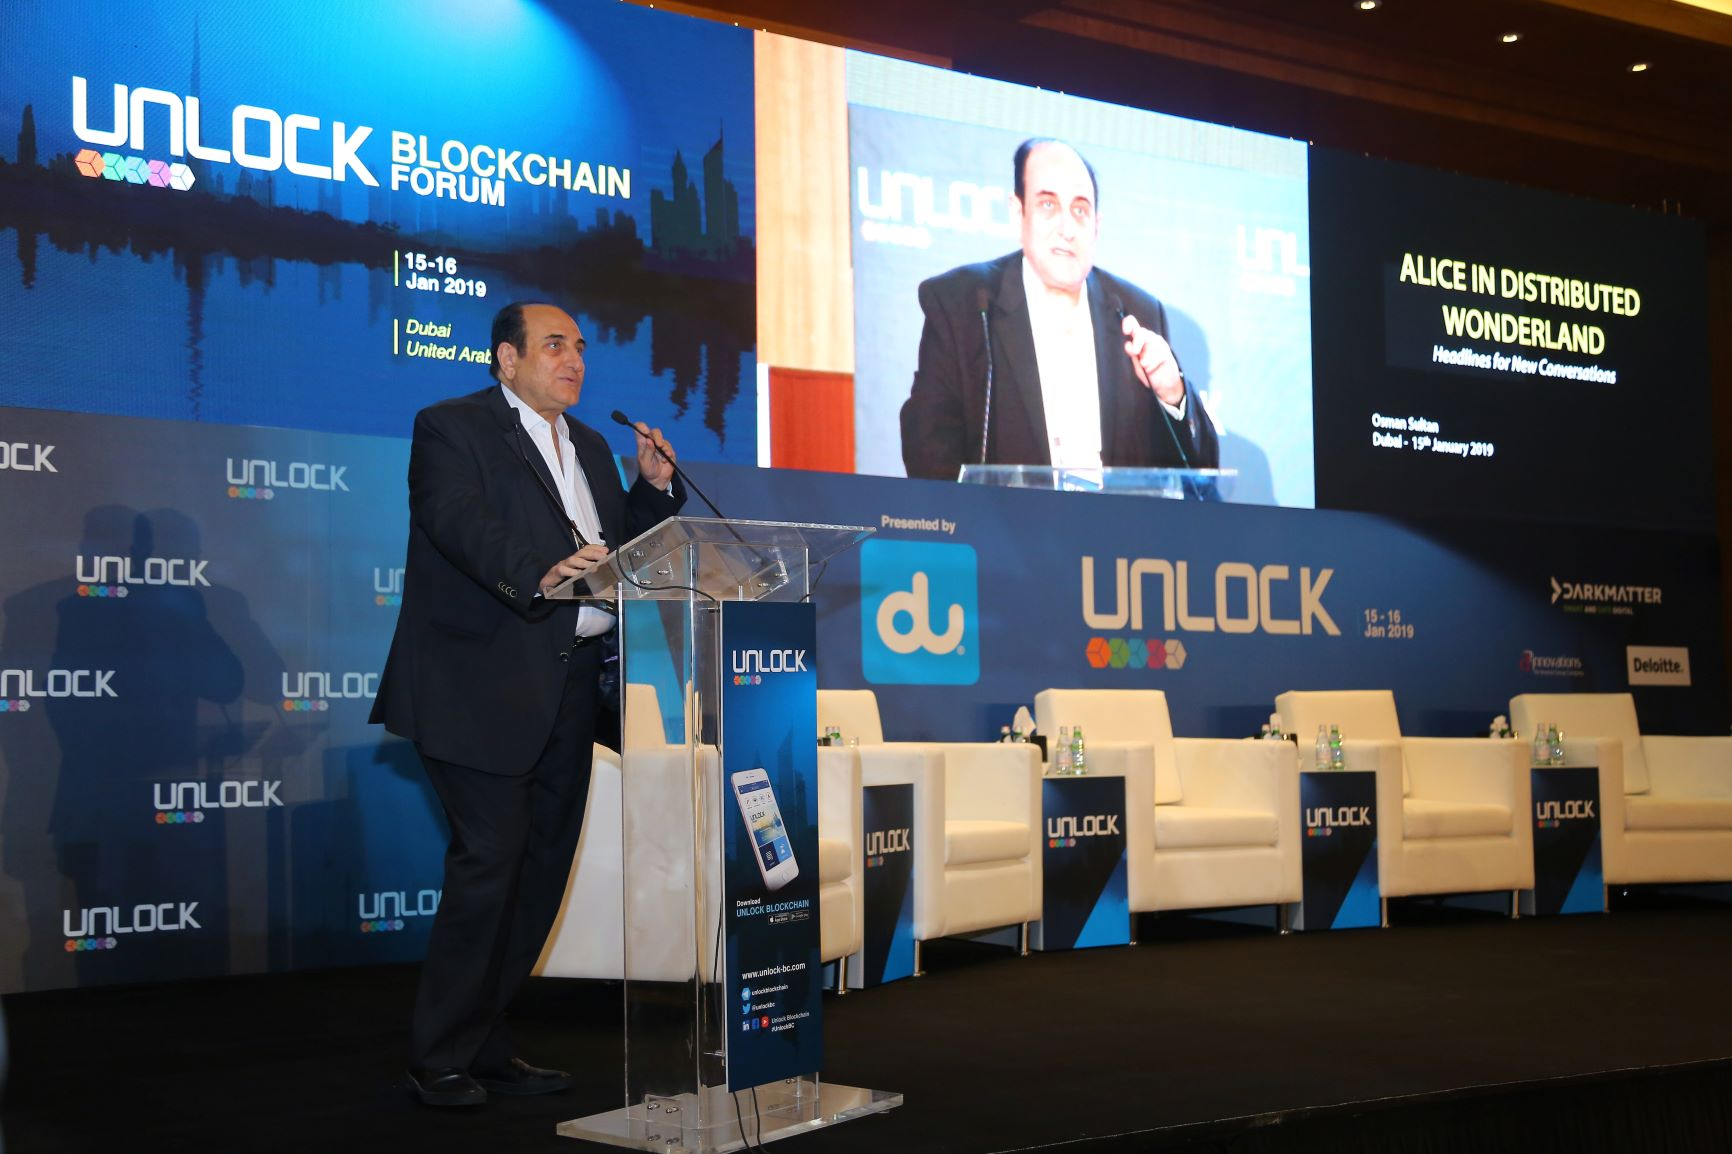 UNLOCK Blockchain Forum ends with major announcements on the 10-year anniversary of the Blockchain inception